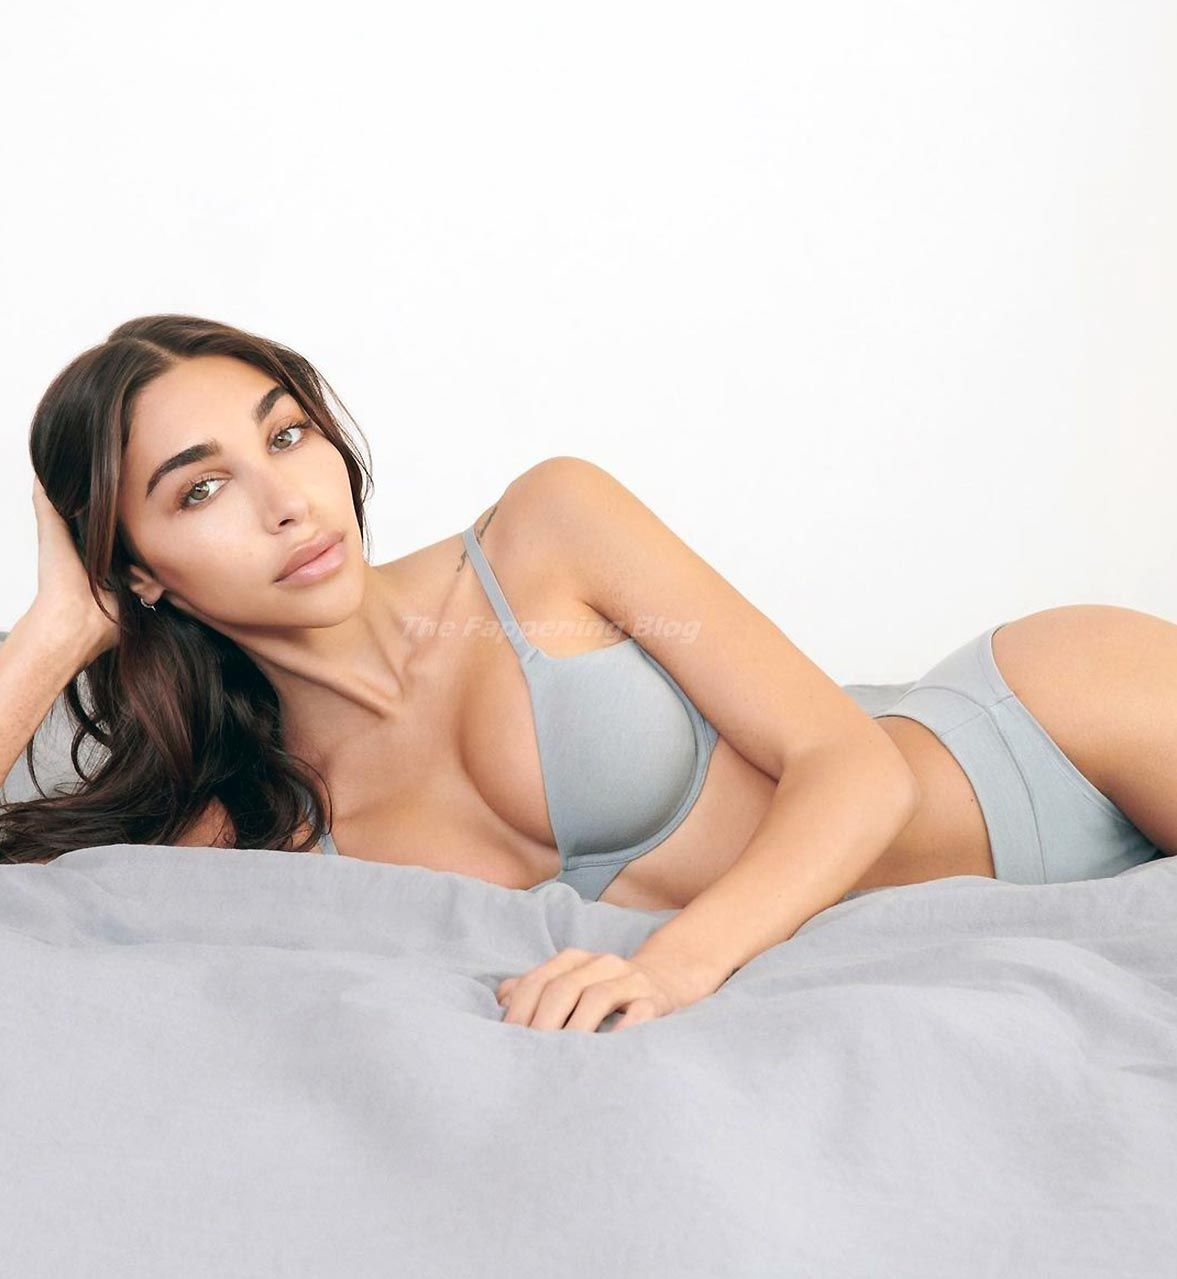 Chantel Jeffries Nude Leaked The Fappening & Sexy 0323